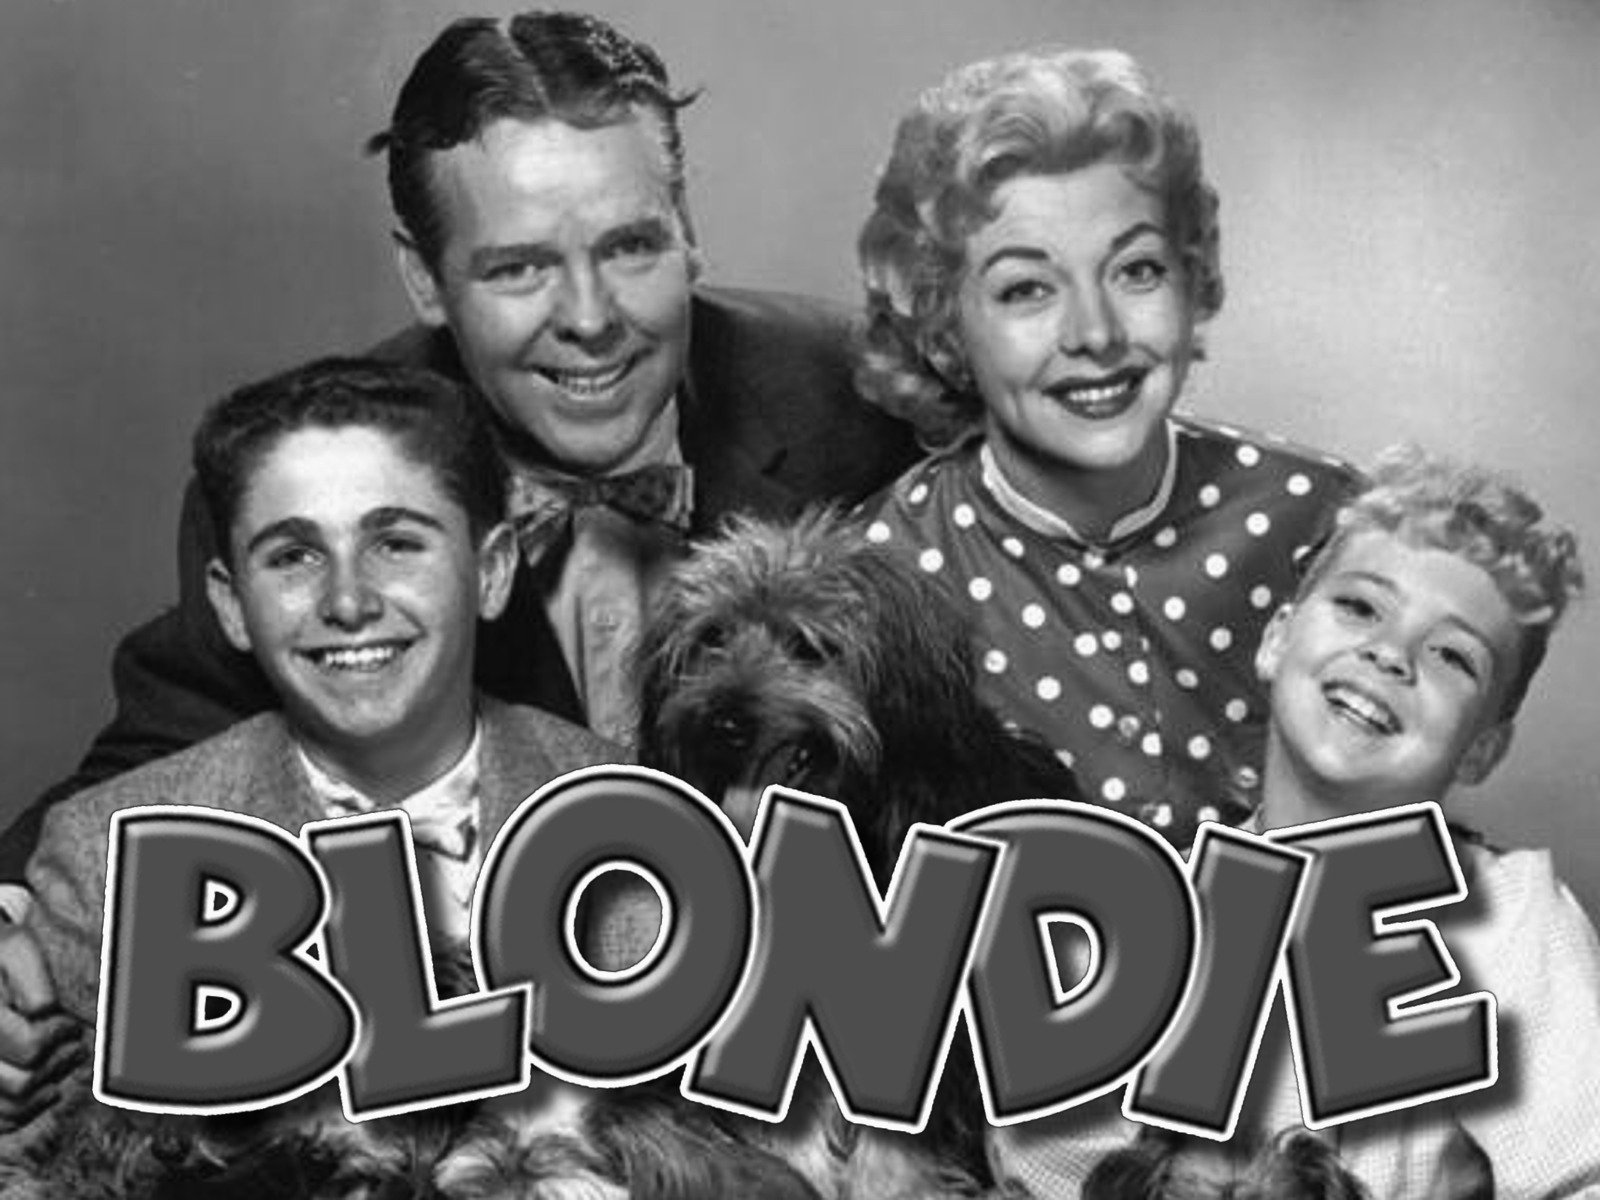 Blondie - Season 1